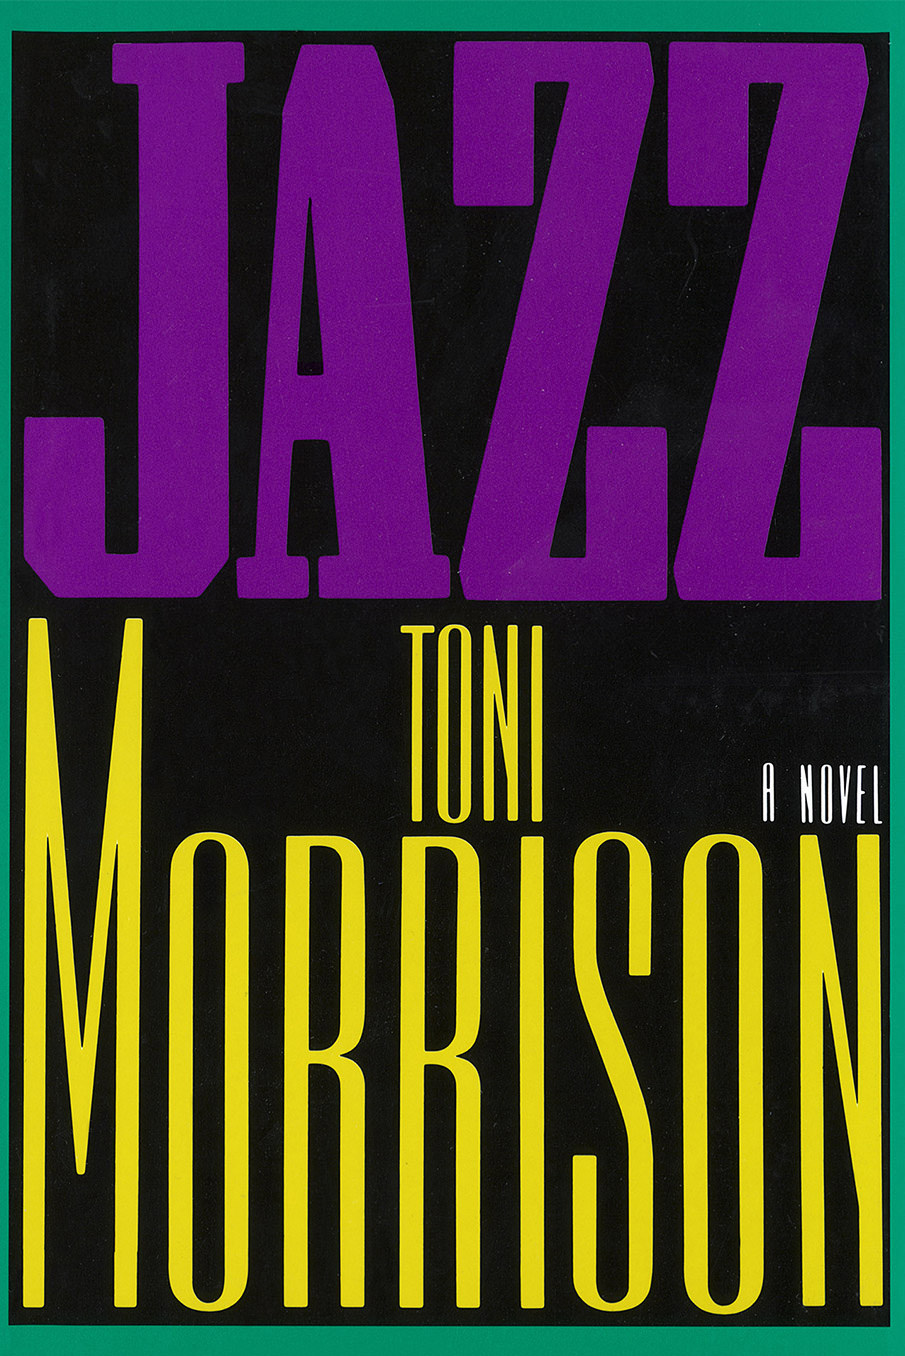 an analysis of toni morrisons book like father like son